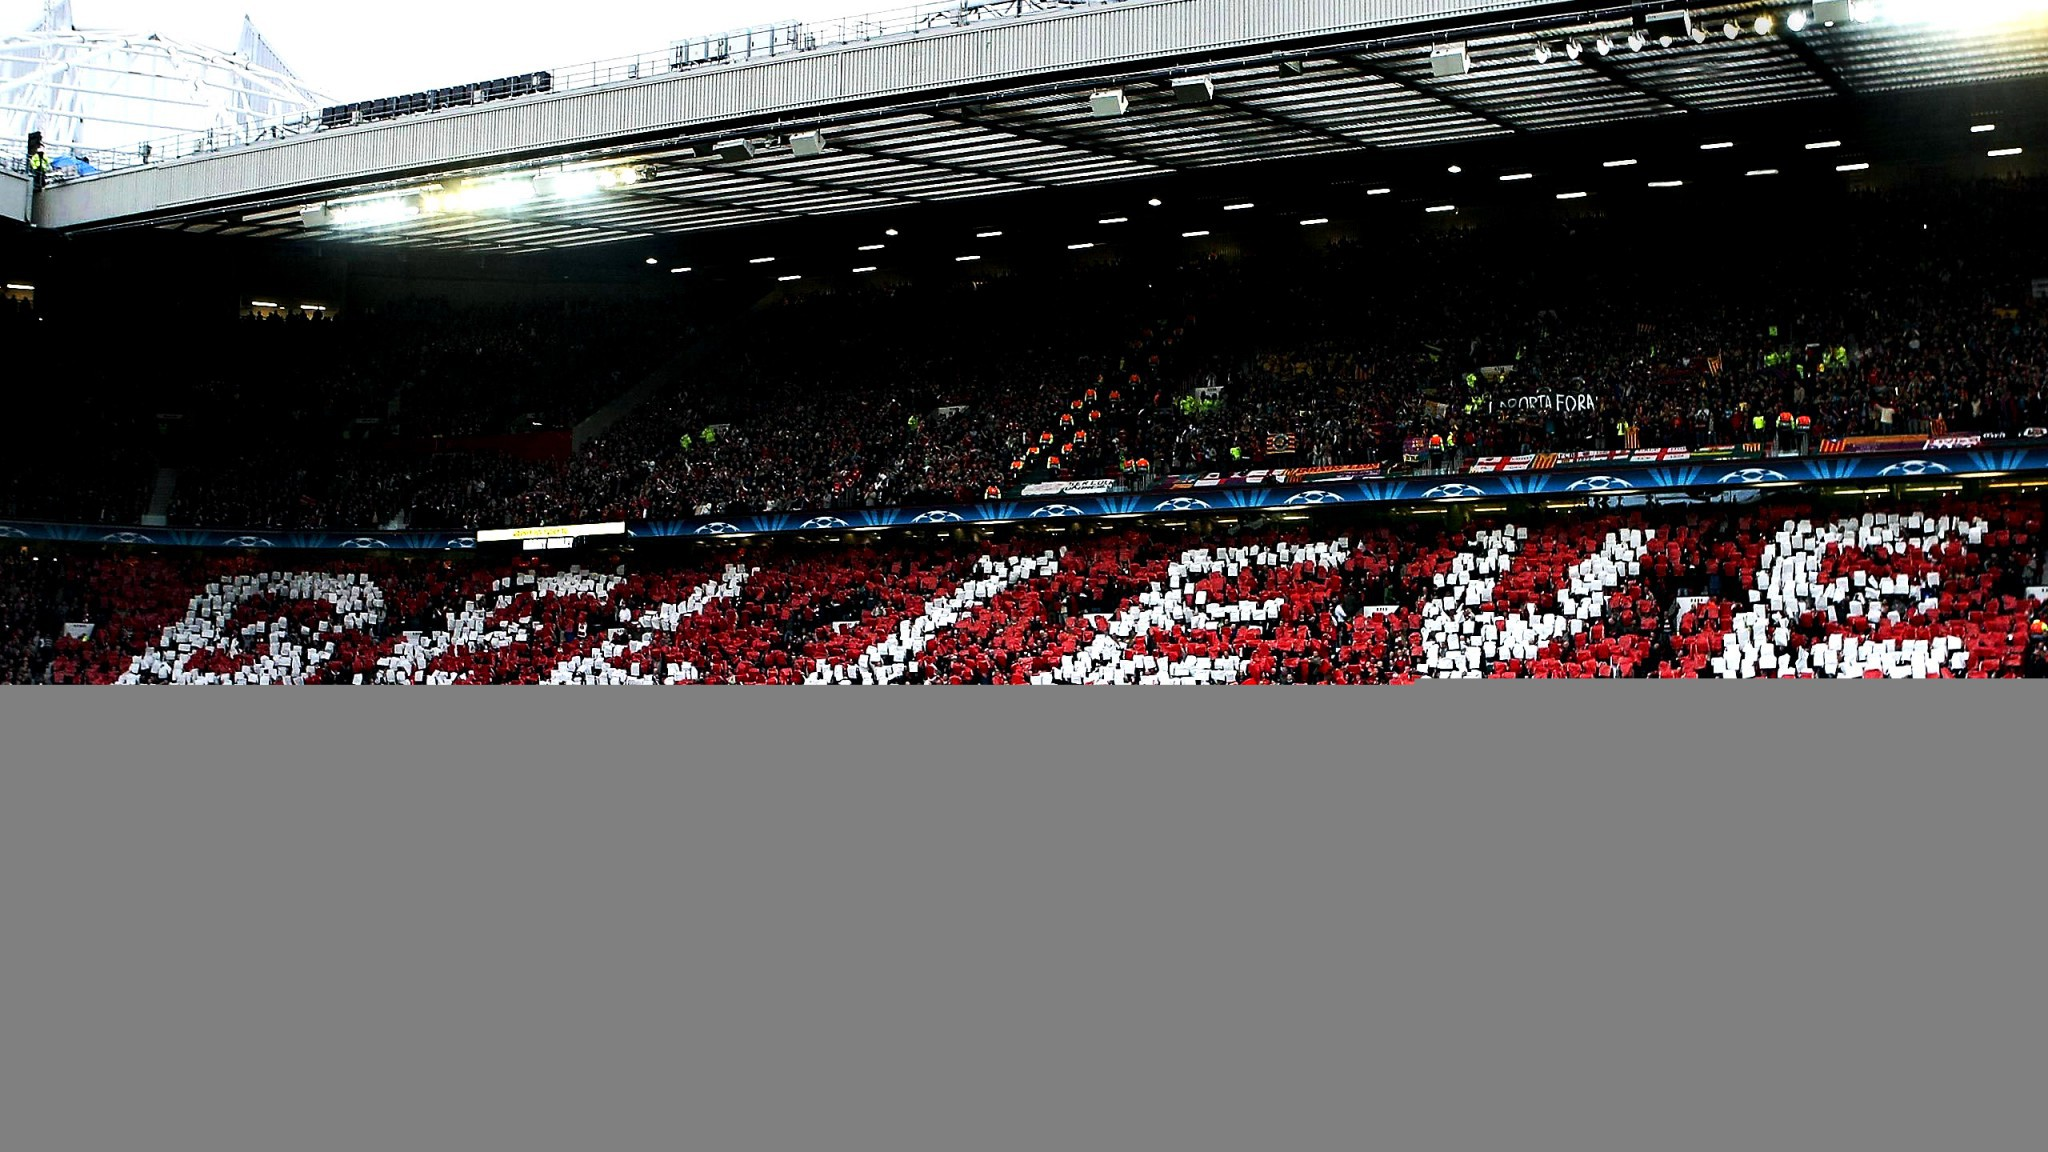 Man Utd Old Trafford Stadium Believe Choreography Wallpaper Manchester United Wallpaper Hd For Pc 2048x1152 Wallpaper Teahub Io